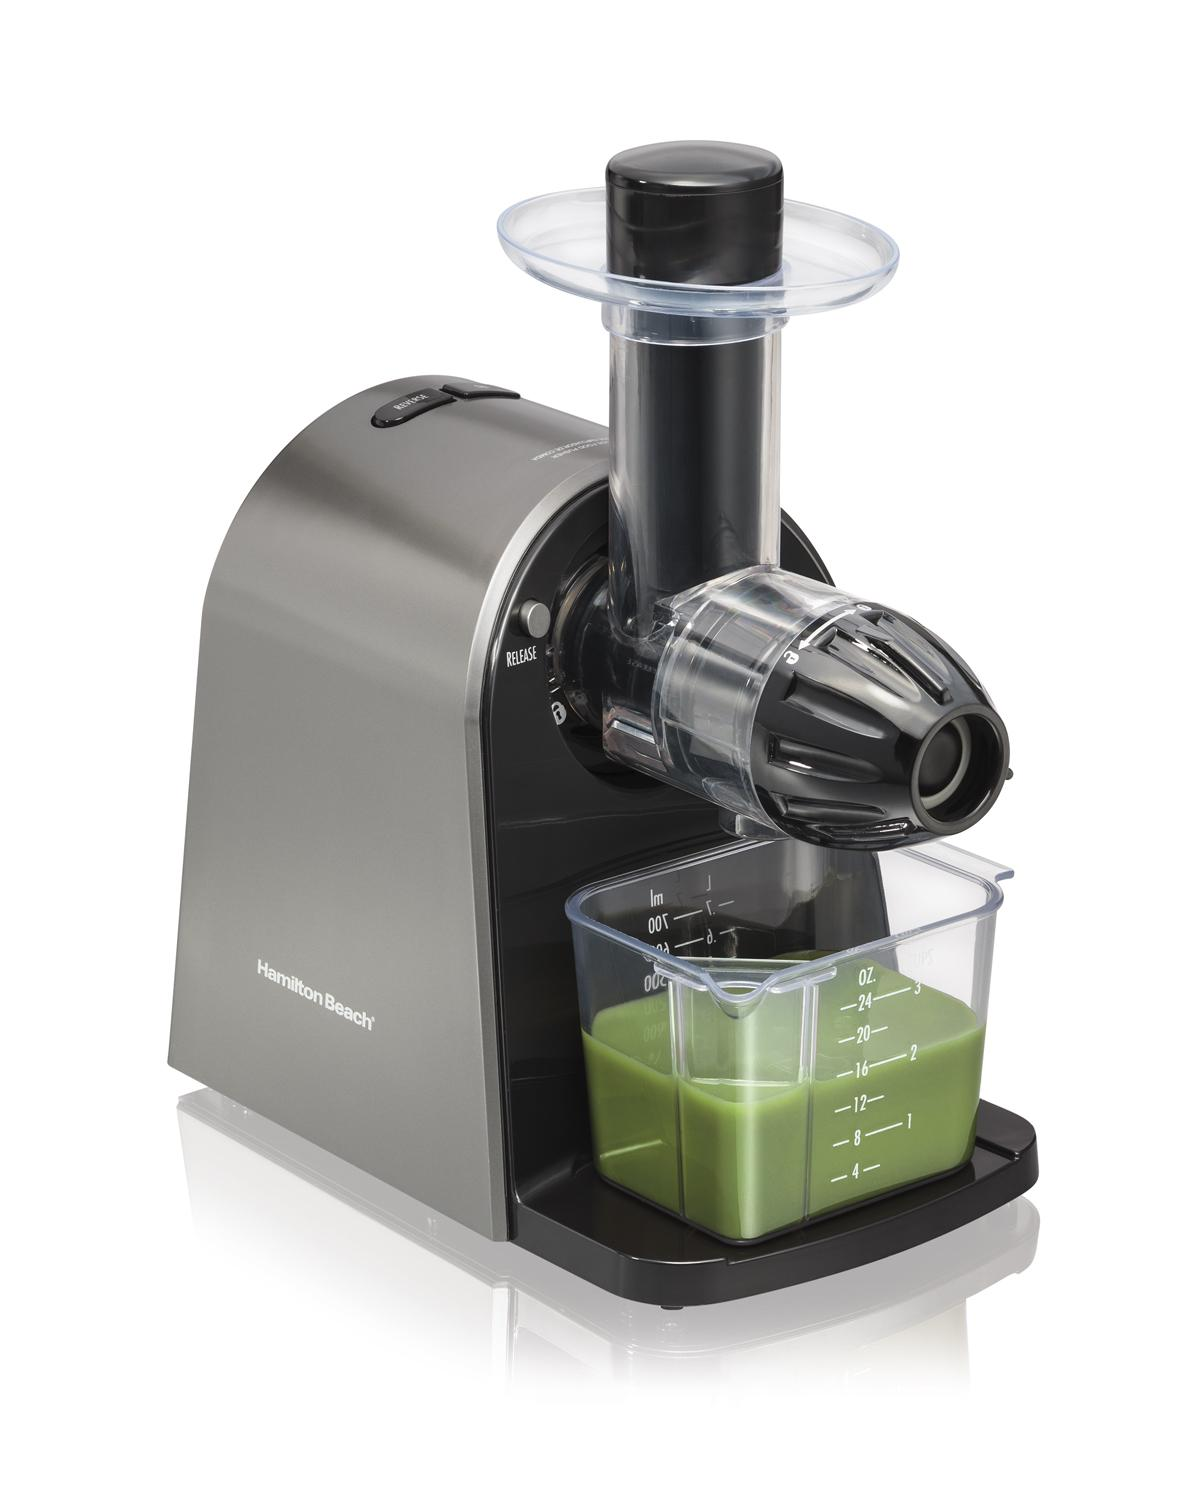 Kalorik Masticating Juicer Review : juicer breville commercial cuisinart omega extractor slow juicers electric vegetable masticating